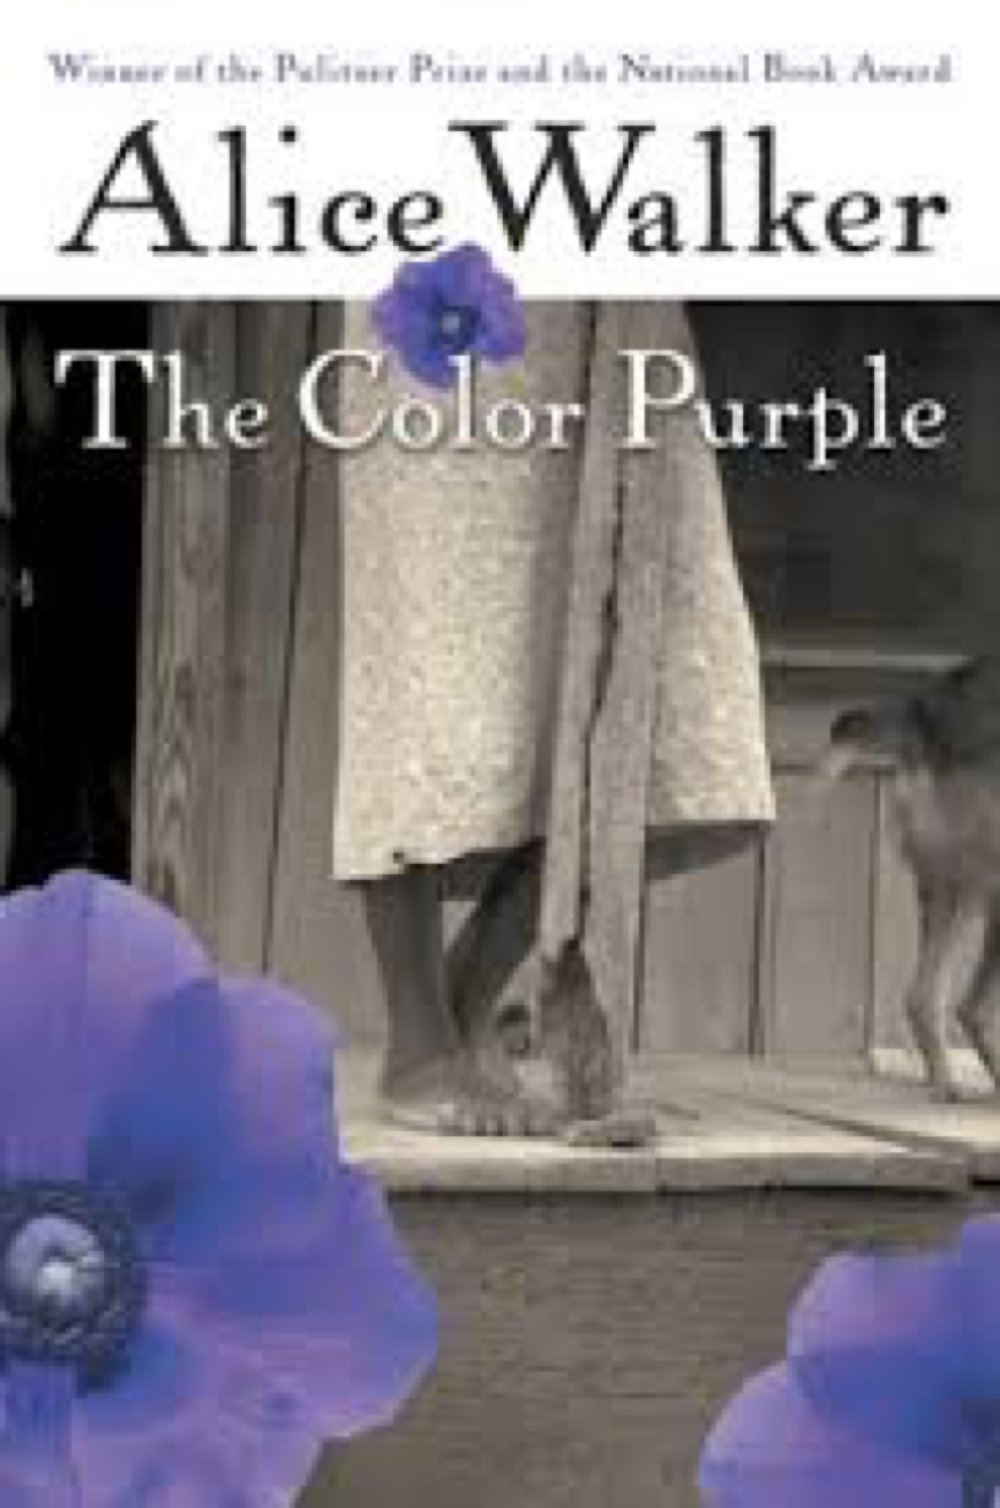 an analysis of the color purple novel by alice walker Quizlet provides an analysis of the main characters in the color purple a novel by alice walker literature activities, flashcards and games home / the color purple analysis if graphic incest on the first page of a novel is not nc-17.